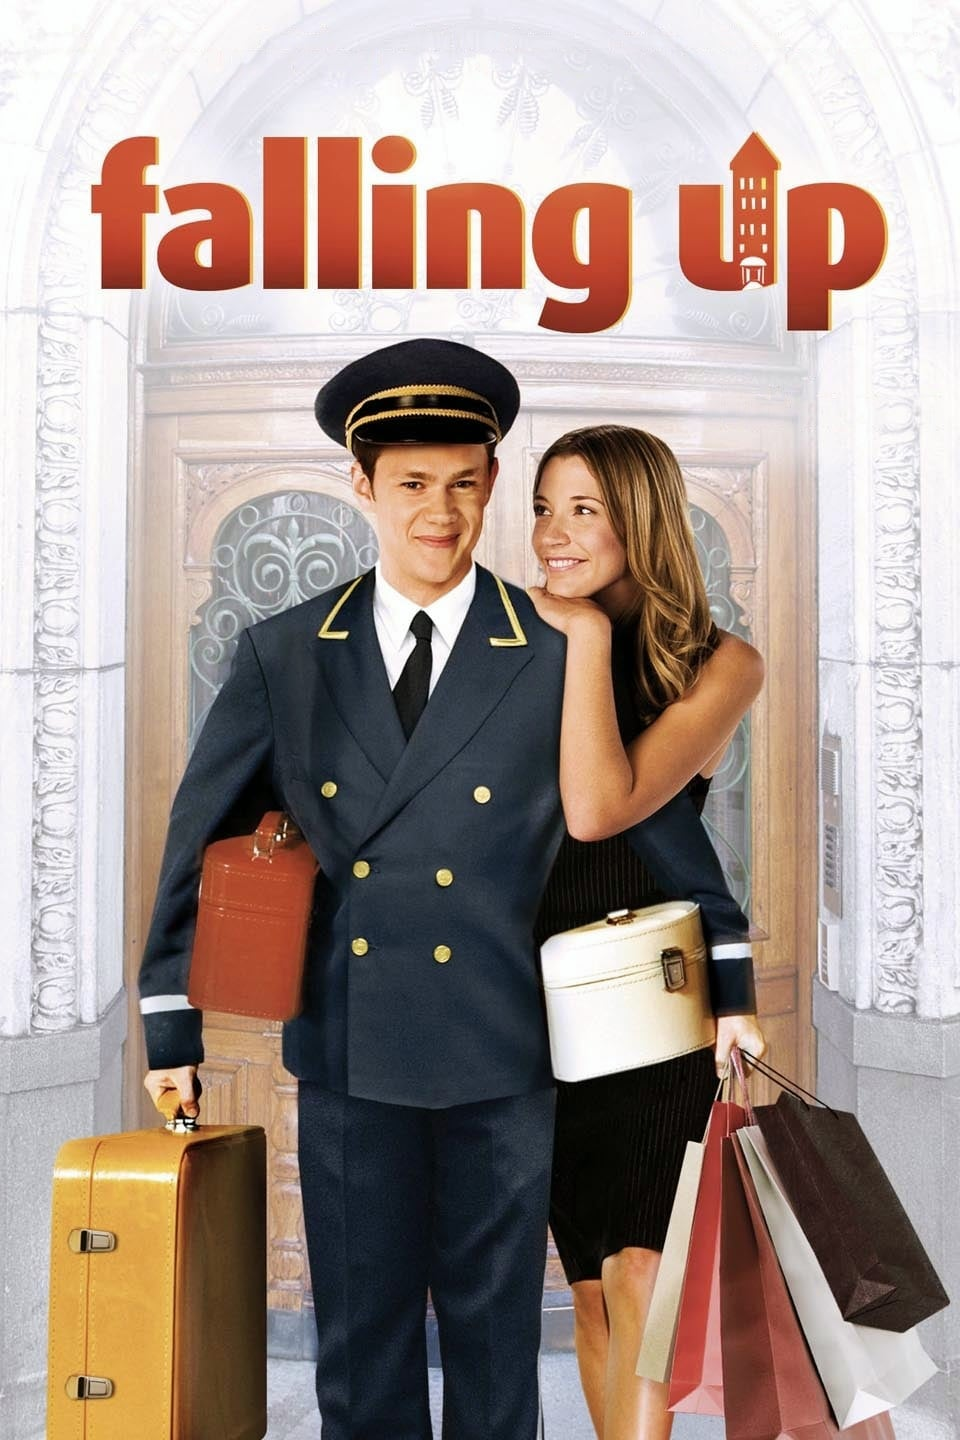 Falling Up on FREECABLE TV